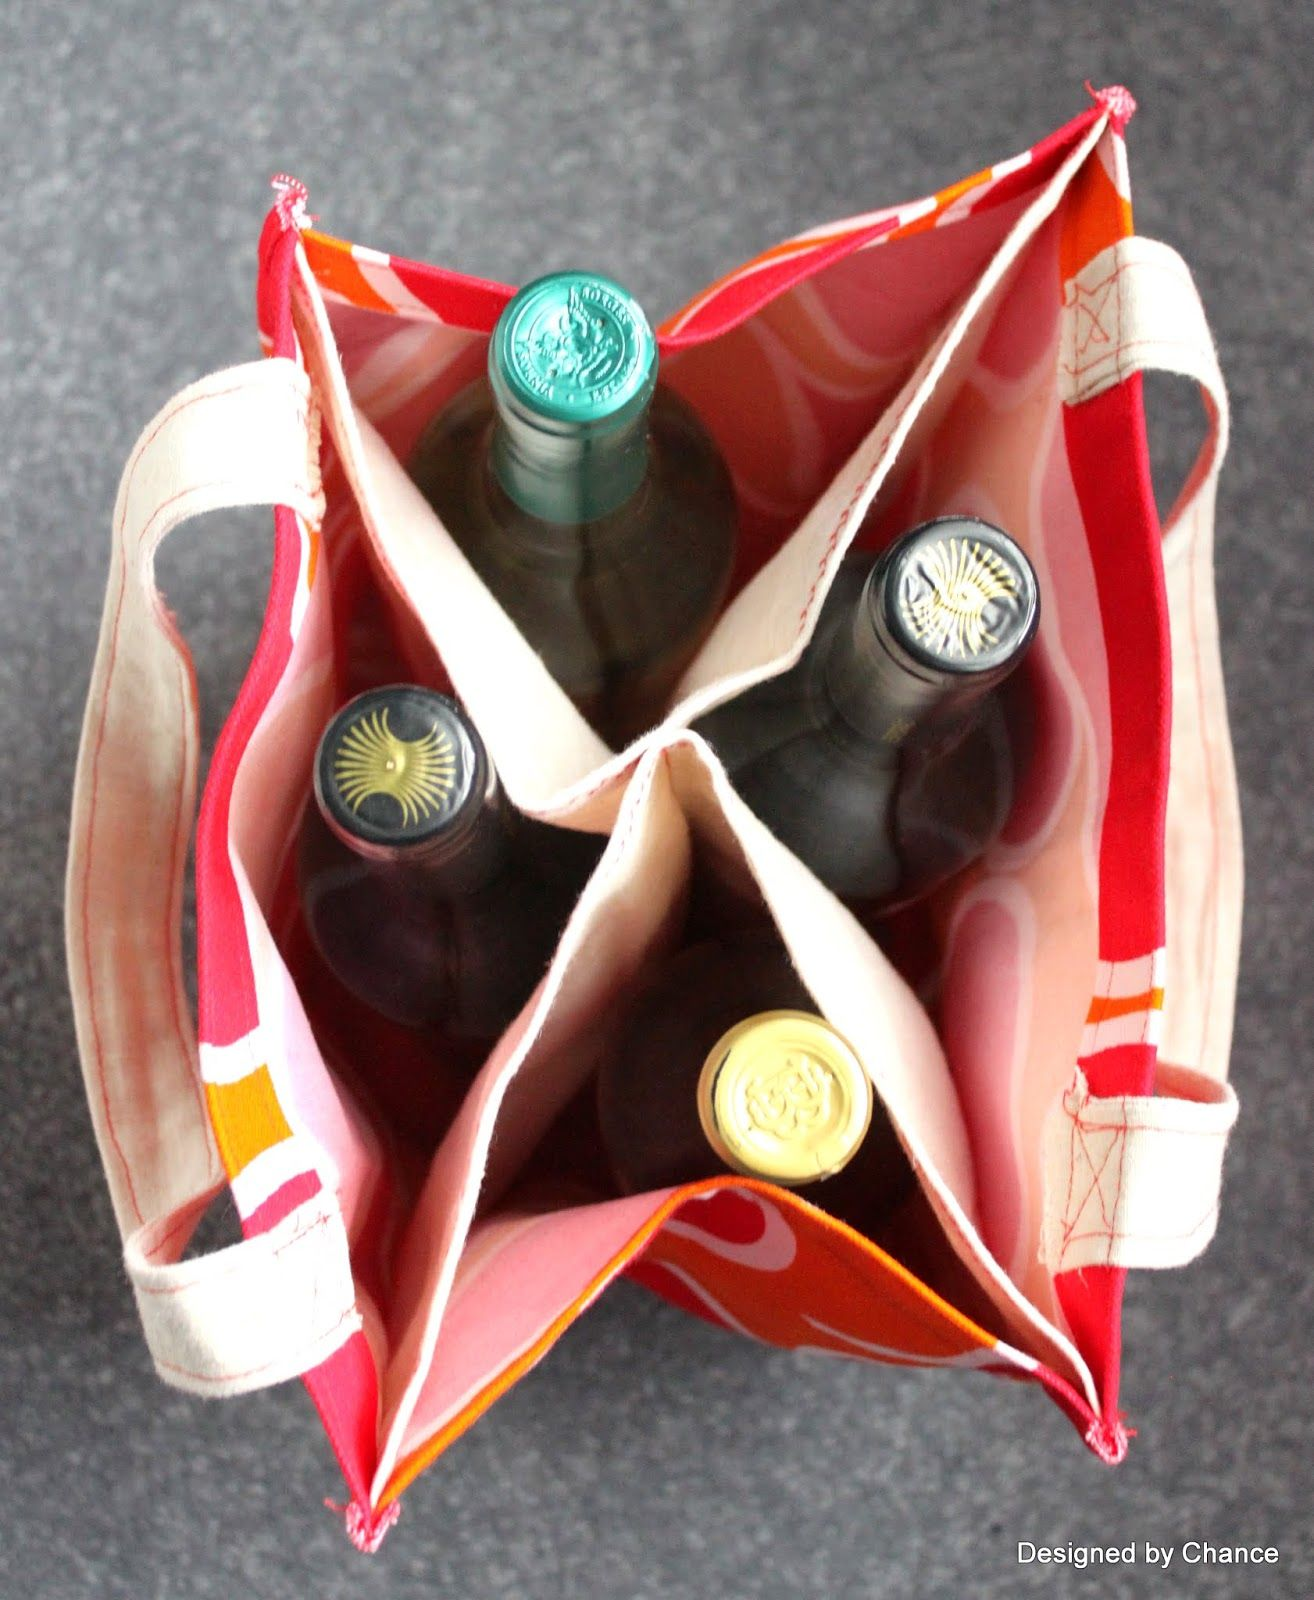 A Dear Friend Of Mine Had A Great Bag She Was Shopping For Wine In Canada And When She Got To The Register She Discovered Th Diy Wine Diy Bag Sewing